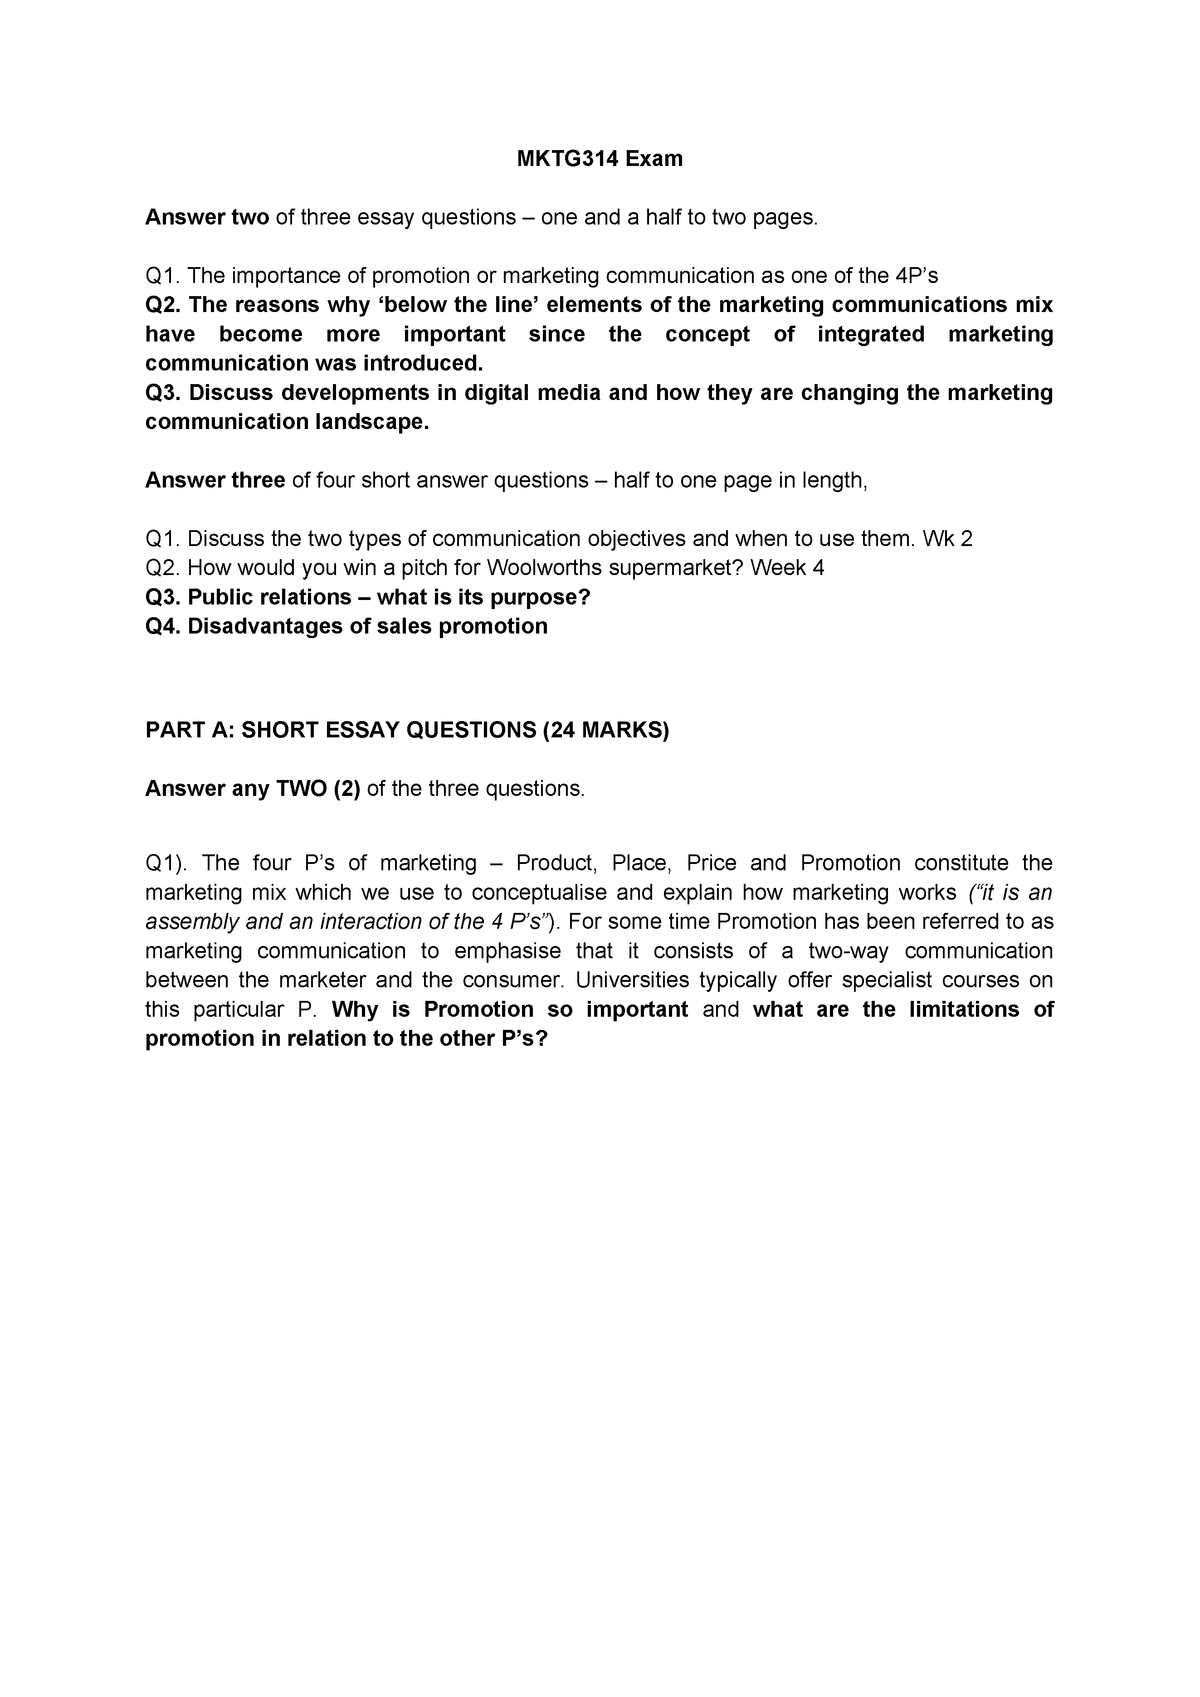 Exam 9 June 2016, questions and answers - MKTG314 - ACU